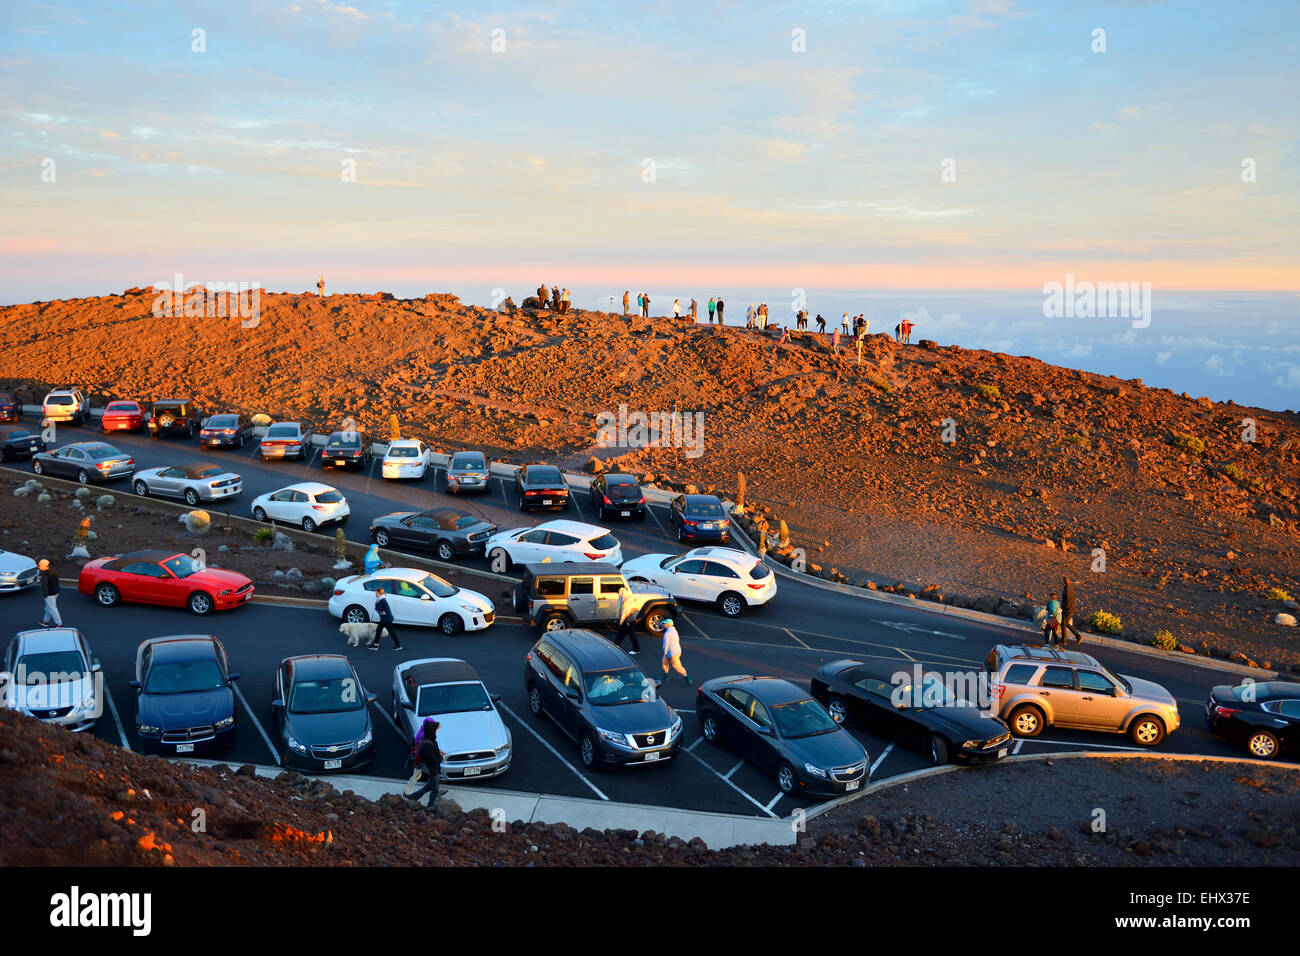 Haleakalā (/ ˌ h ɑː l i ˌ ɑː k ə ˈ l ɑː /; Hawaiian: [ˈhɐlɛˈjɐkəˈlaː]), or the East Maui Volcano, is a massive shield volcano that forms more than 75% of the Hawaiian Island of temebposubs.ga western 25% of the island is formed by another volcano, Mauna Kahalawai, also referred to as the West Maui Mountains.. The tallest peak of Haleakalā (